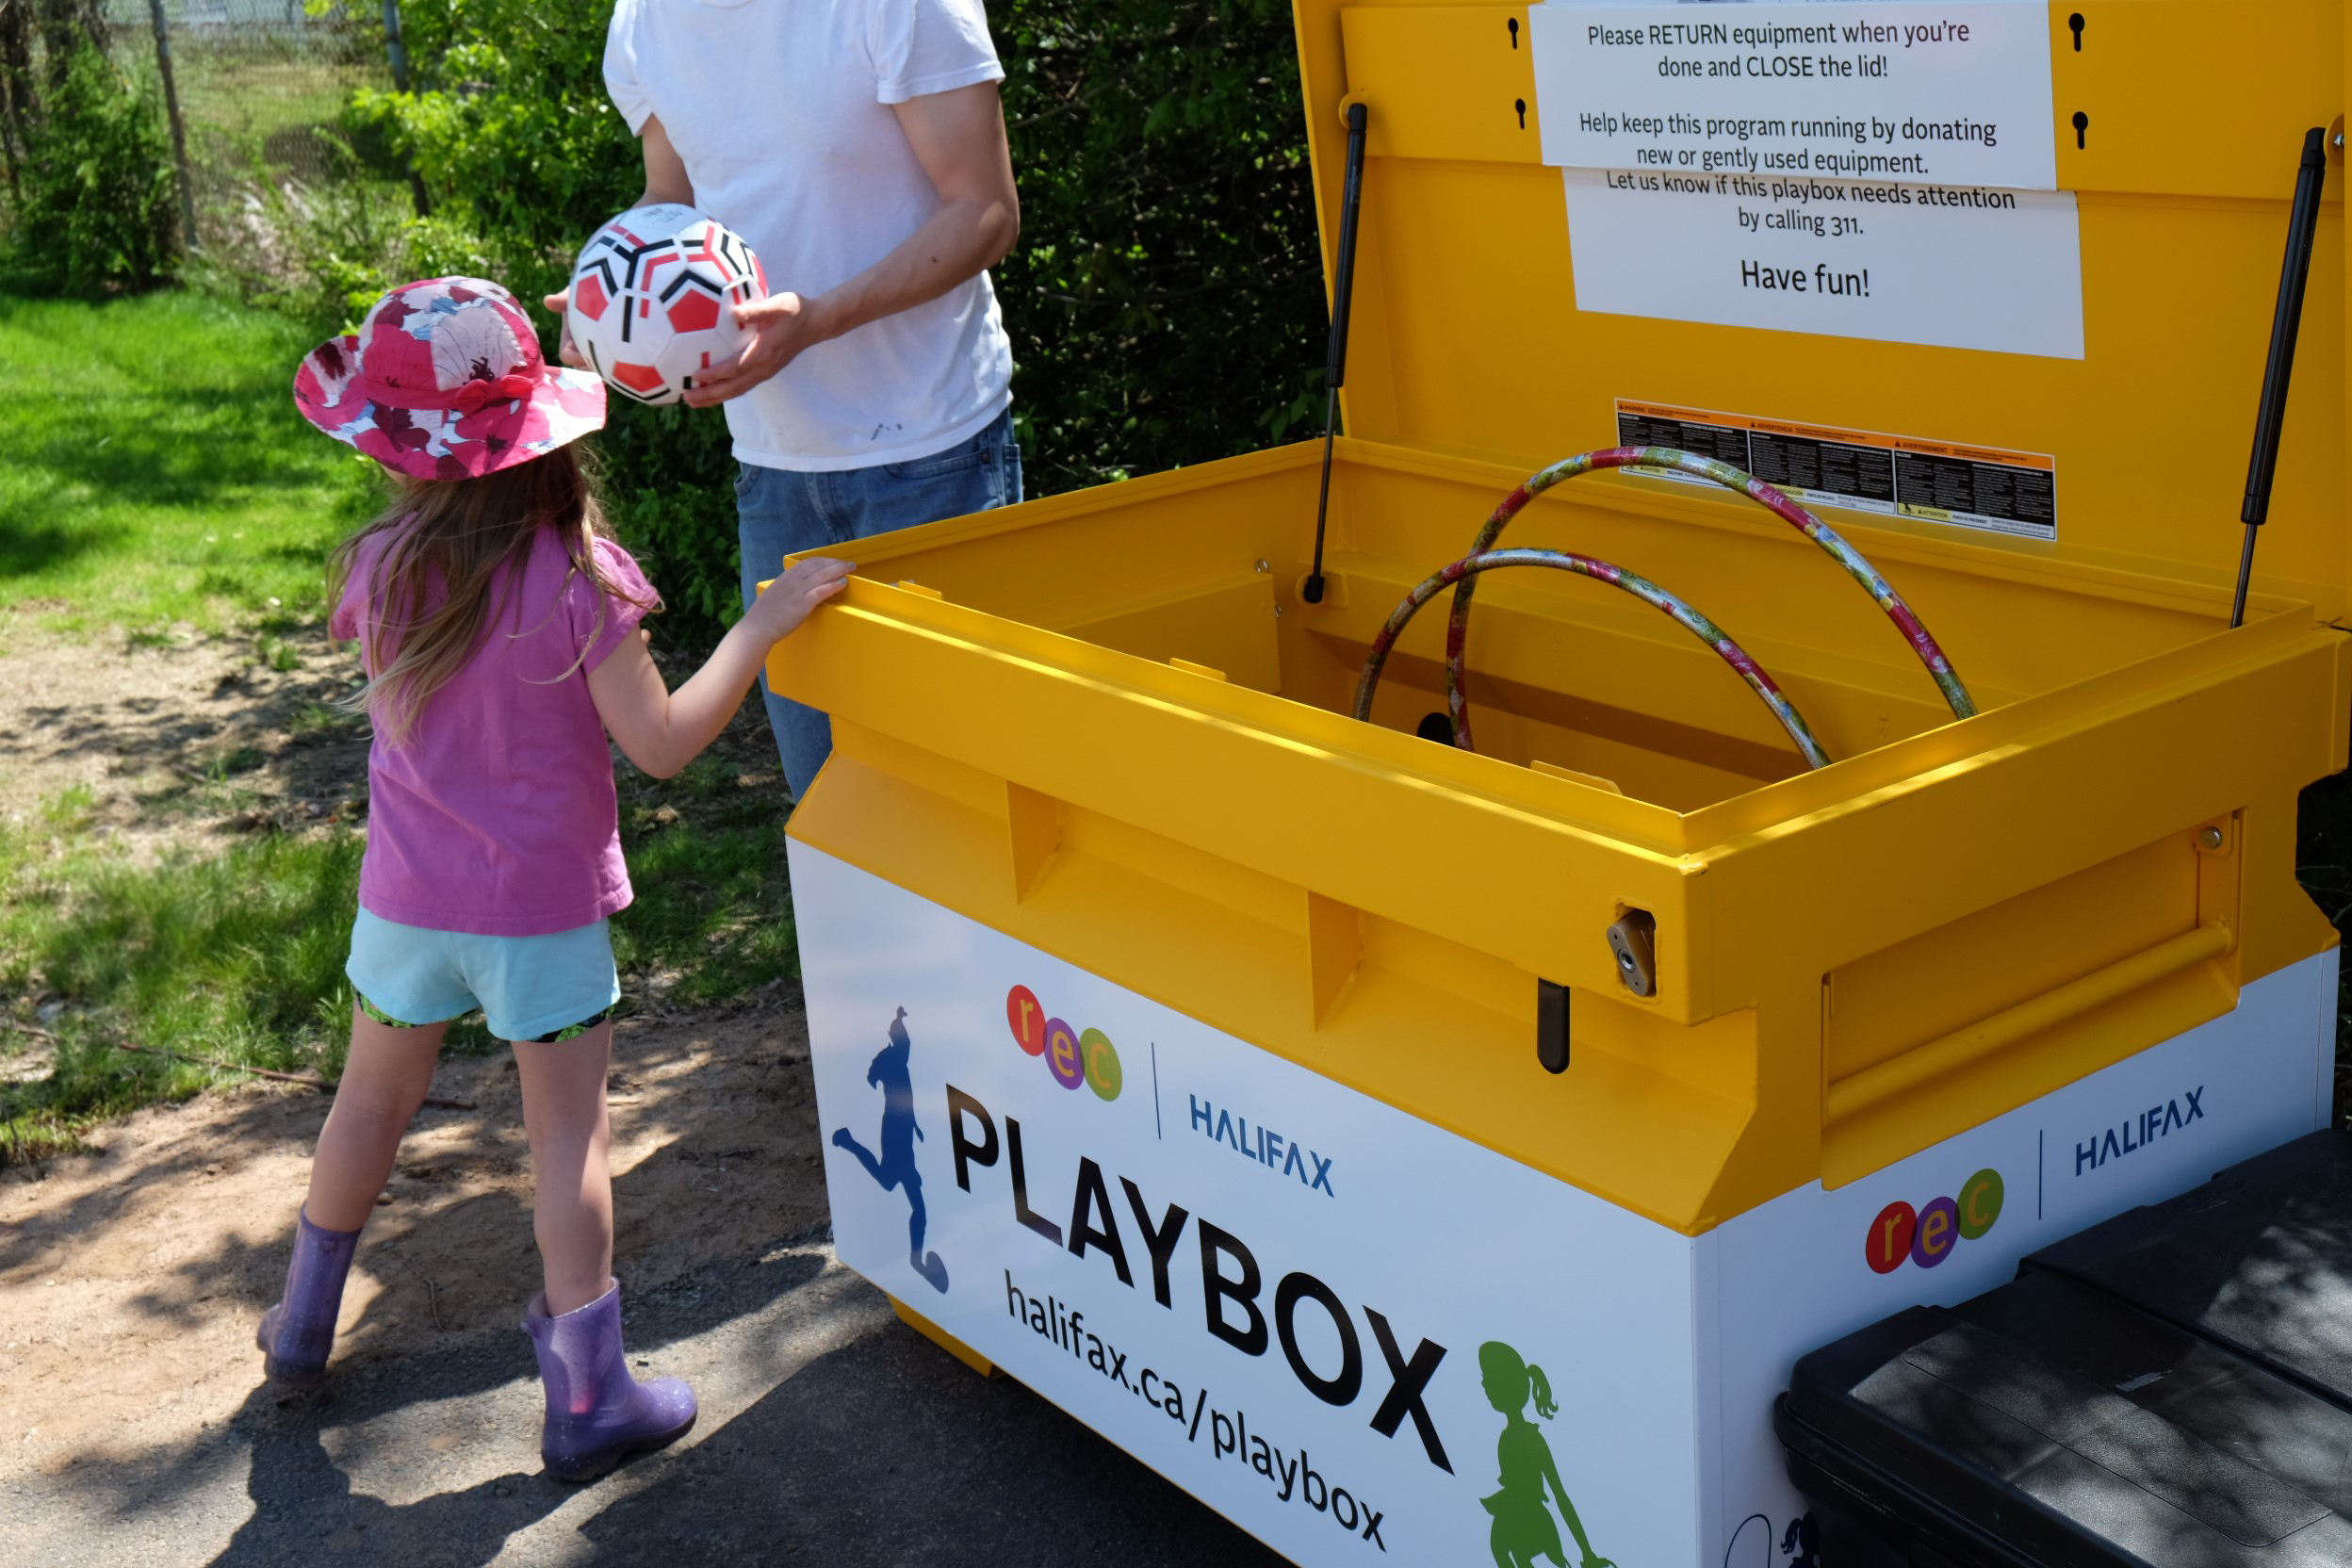 A child and parent borrowing a soccer ball from the playbox